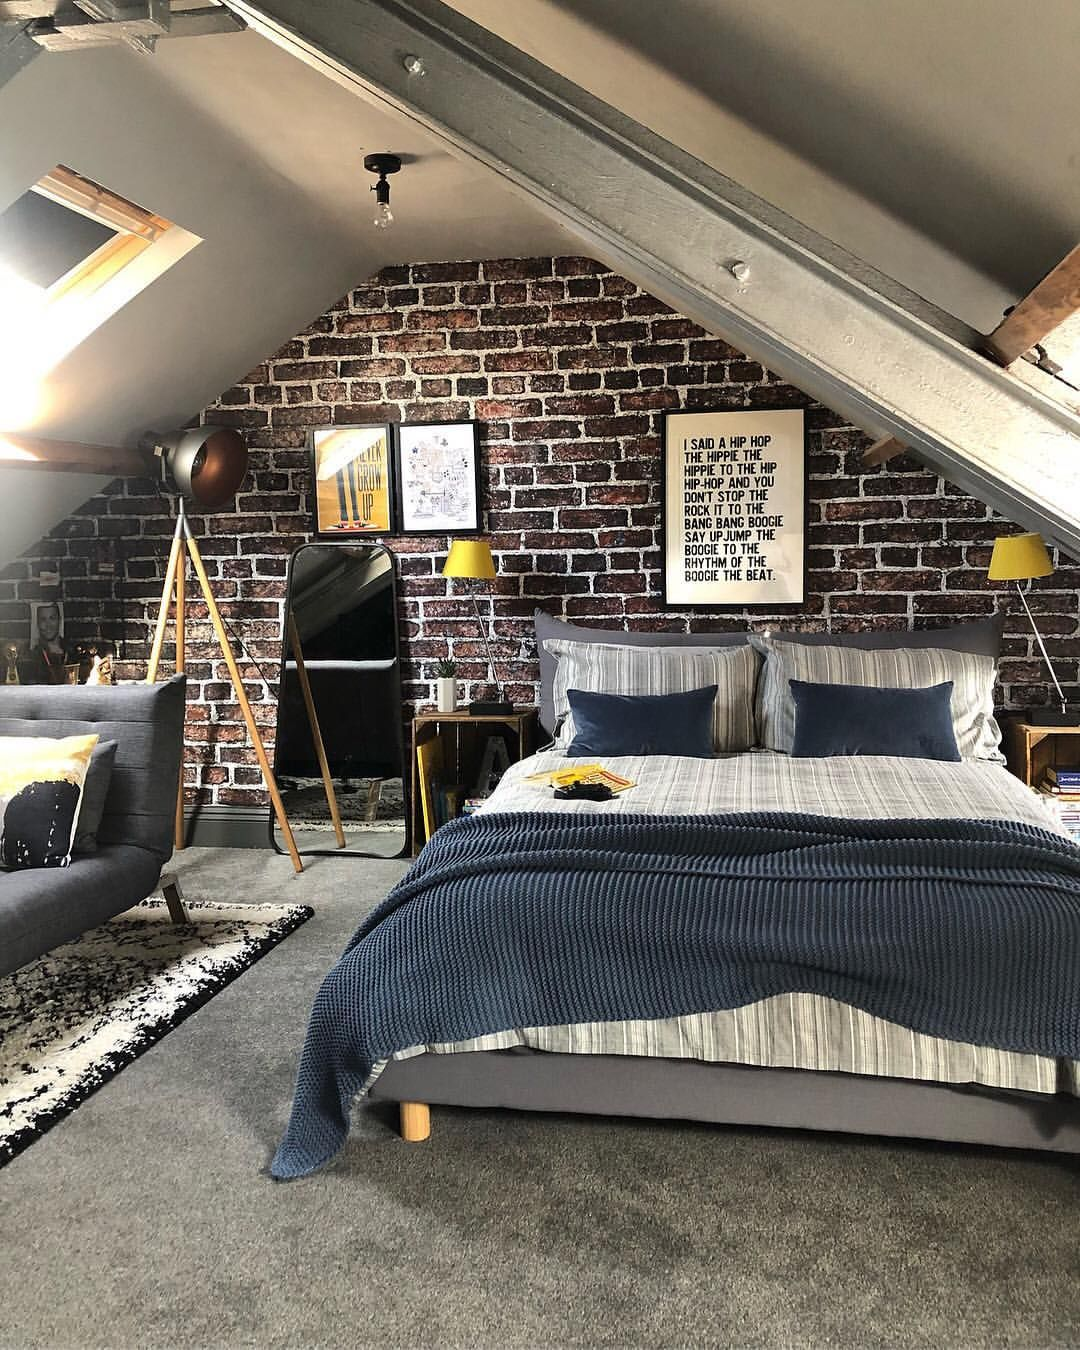 The back to school reality is kicking in, I've really loved having the kids around more and we've had so much fun. I guess I'm lucky as… #loftconversions